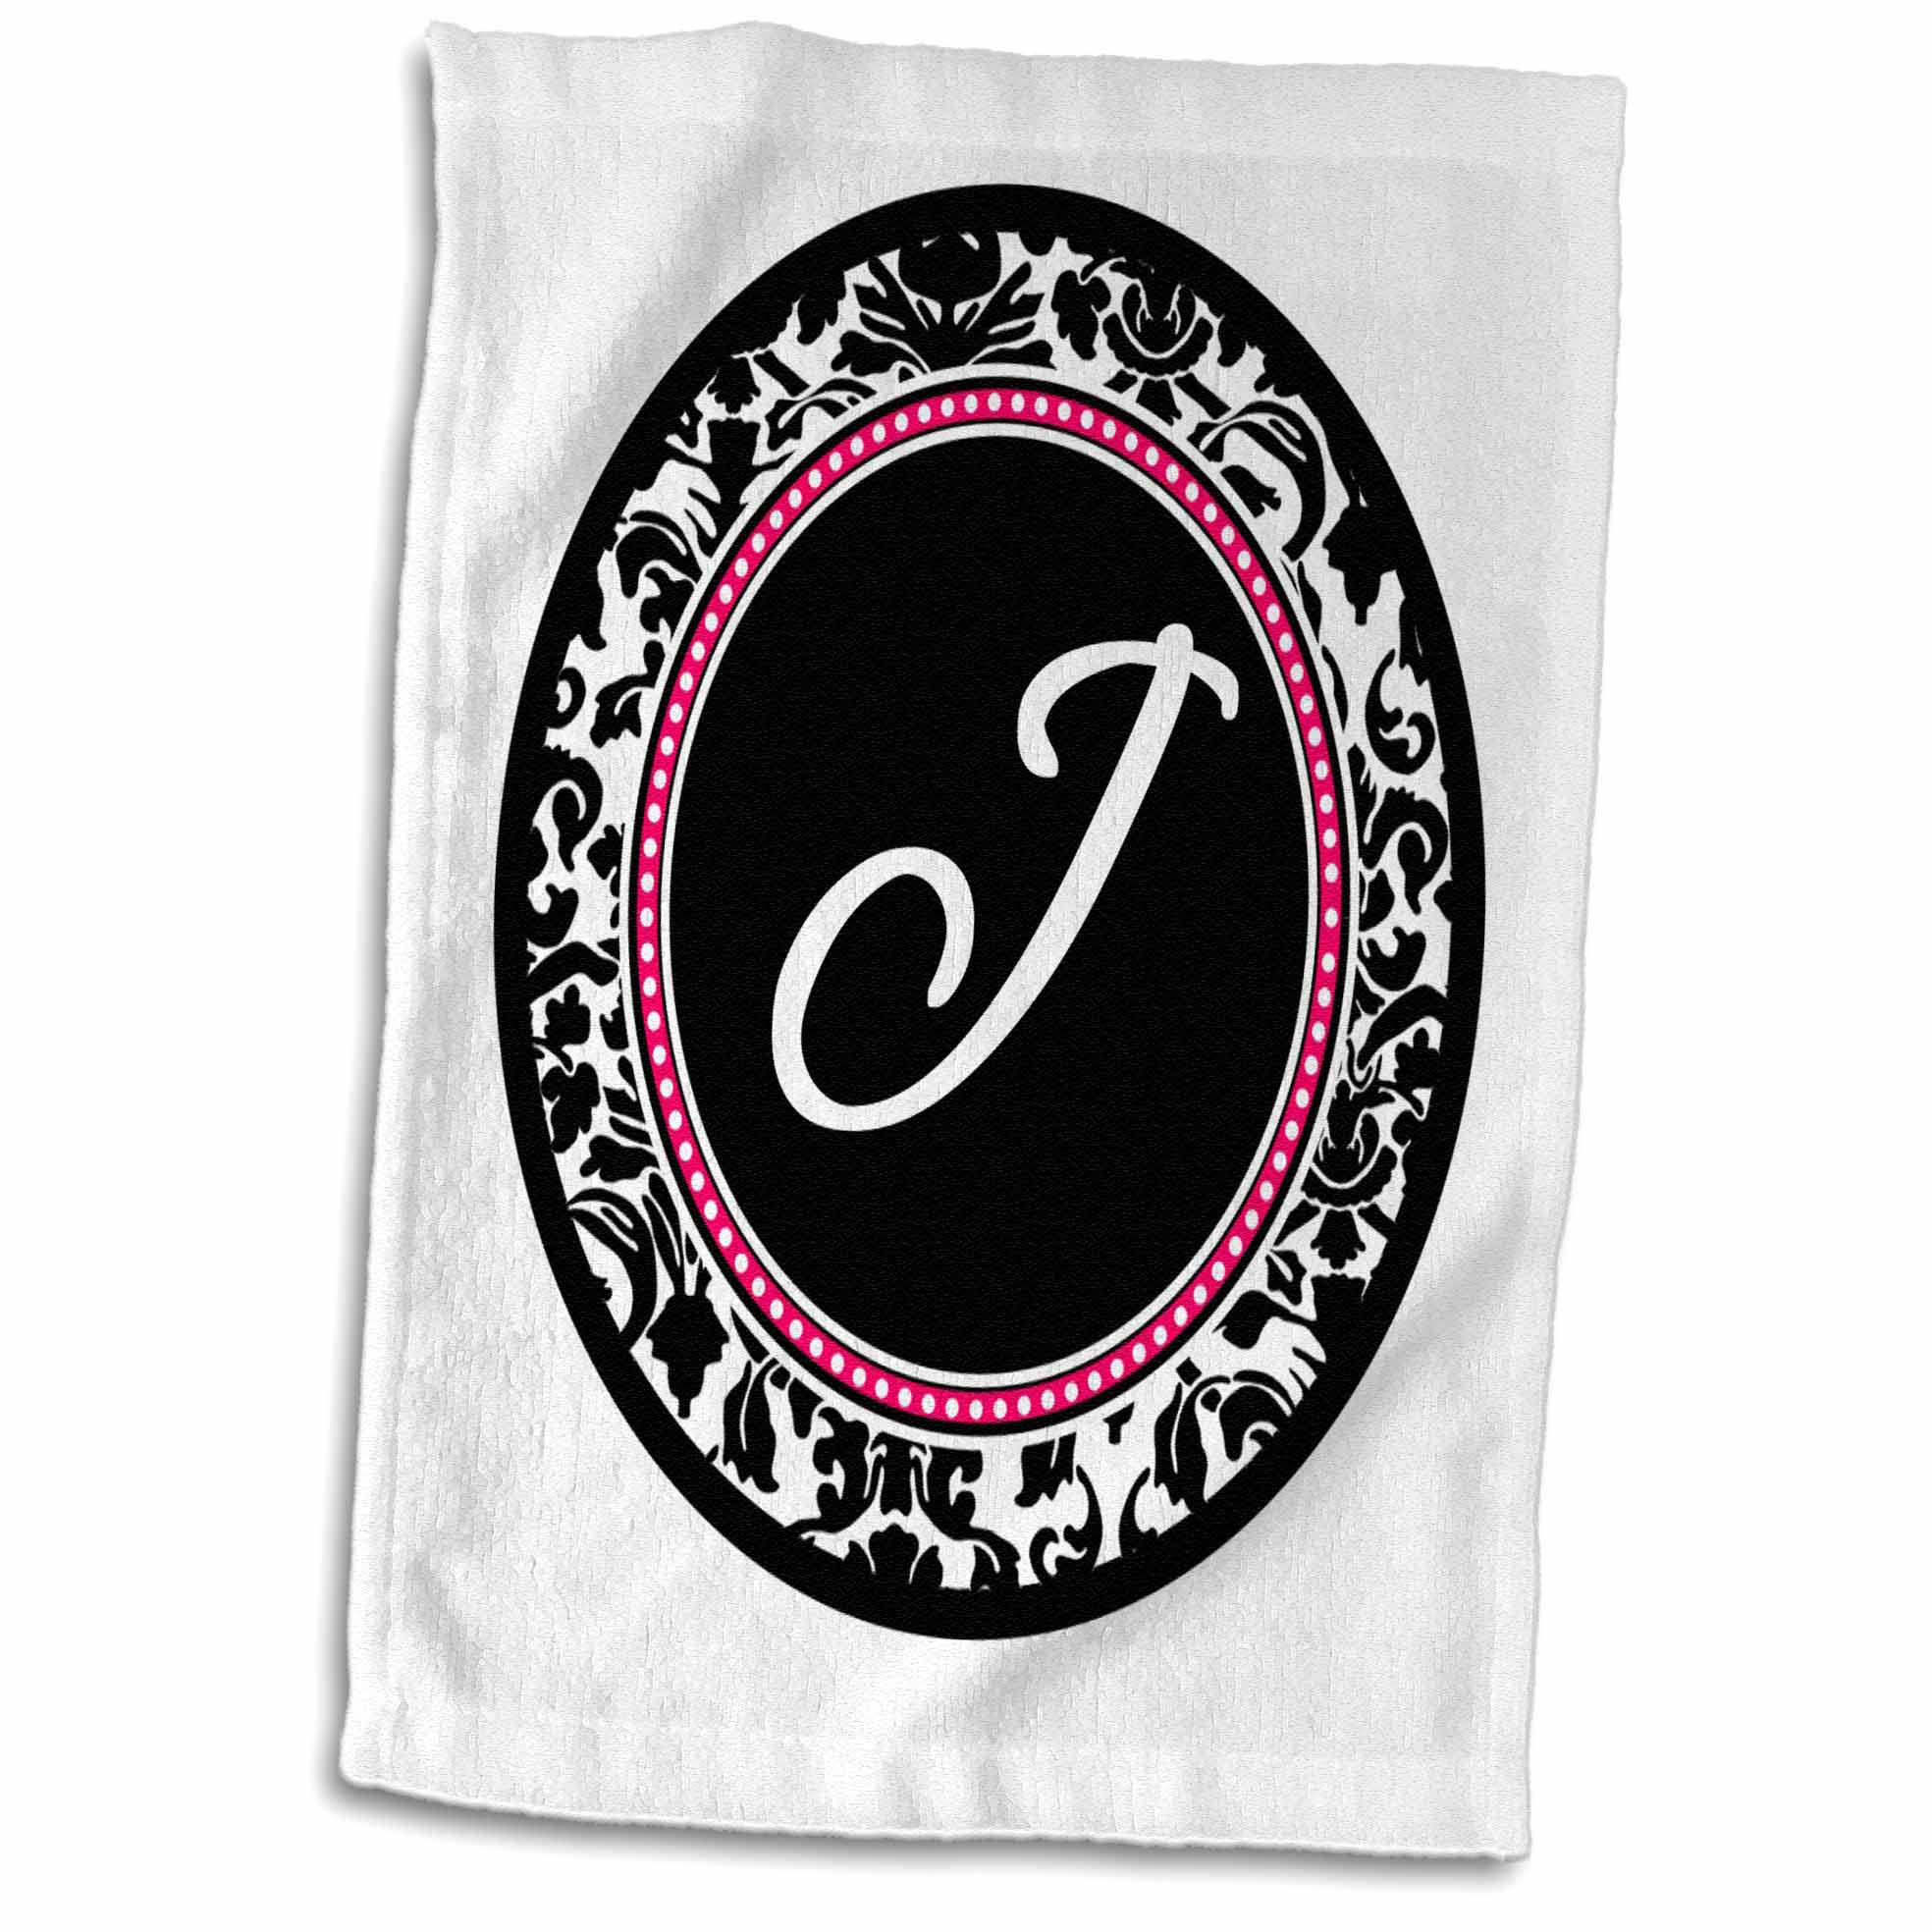 3dRose Letter J stylish monogrammed circle - girly personal initial personalized black damask with hot pink - Towel, 15 by 22-inch